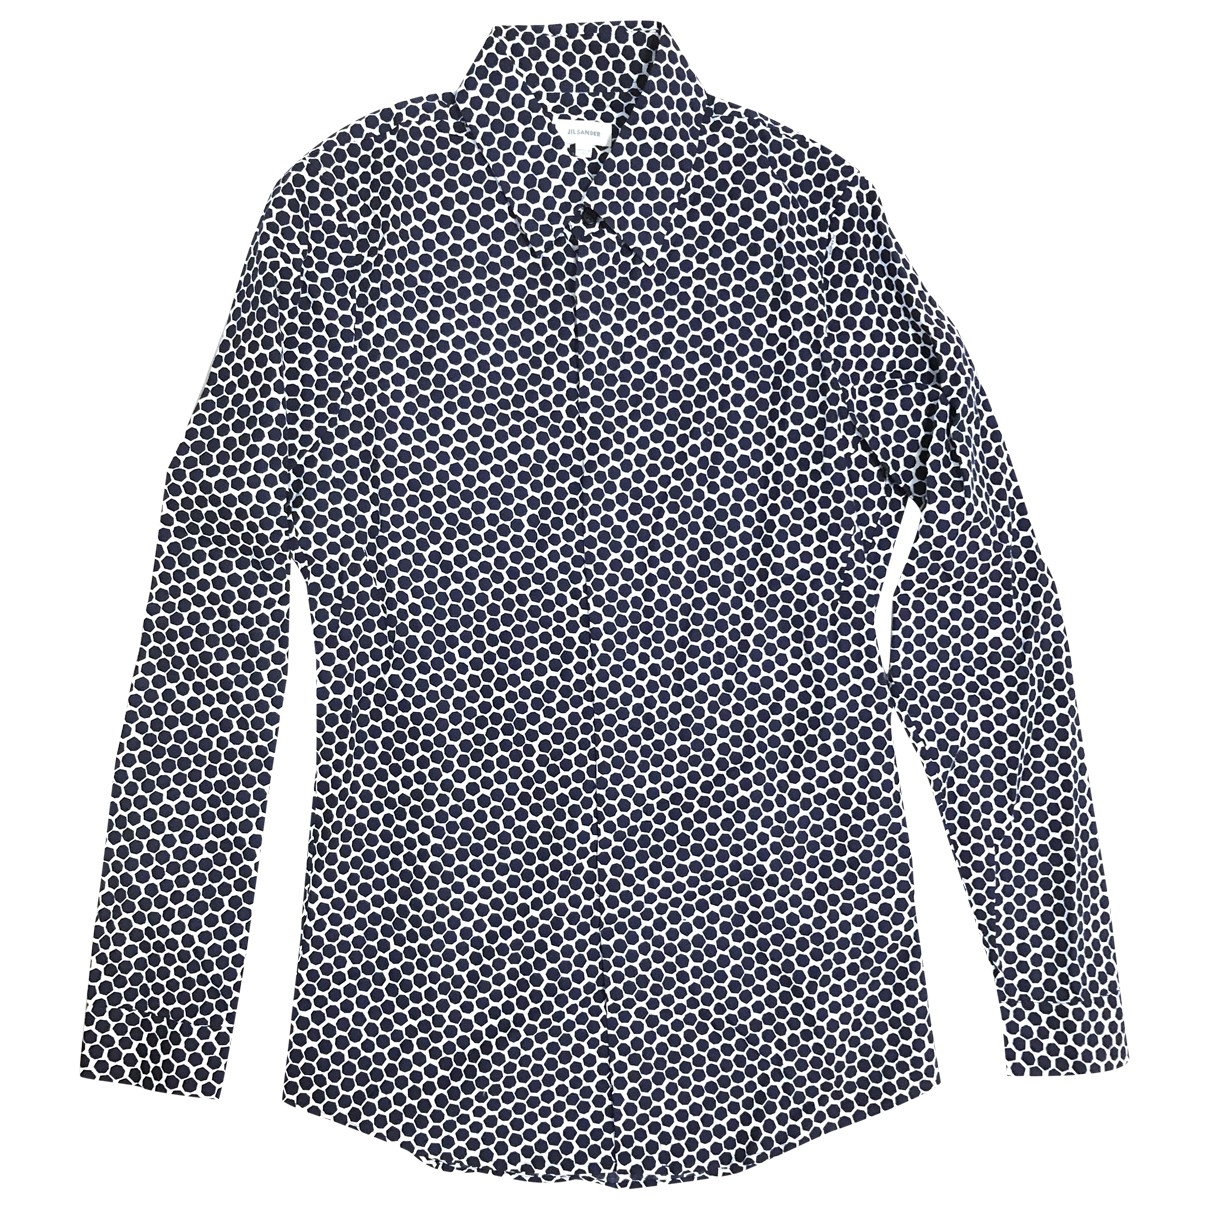 Jil Sander \N Navy Cotton Shirts for Men 38 EU (tour de cou / collar)